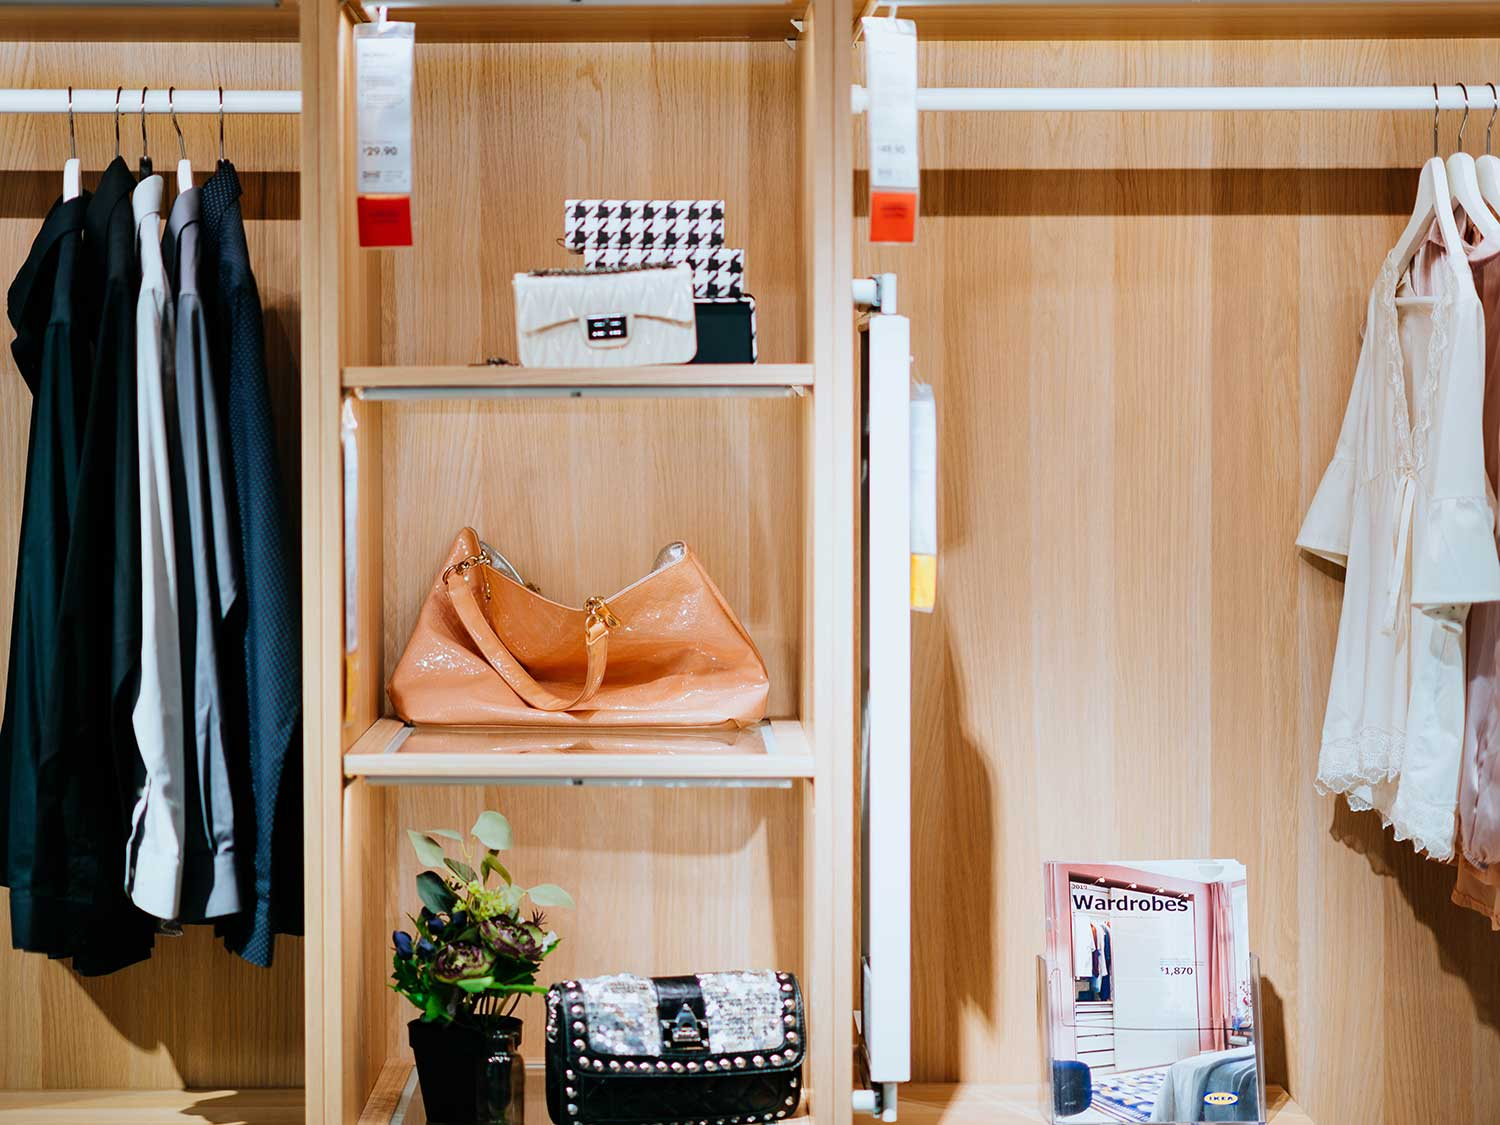 Clothes hanging with accessories in closet.